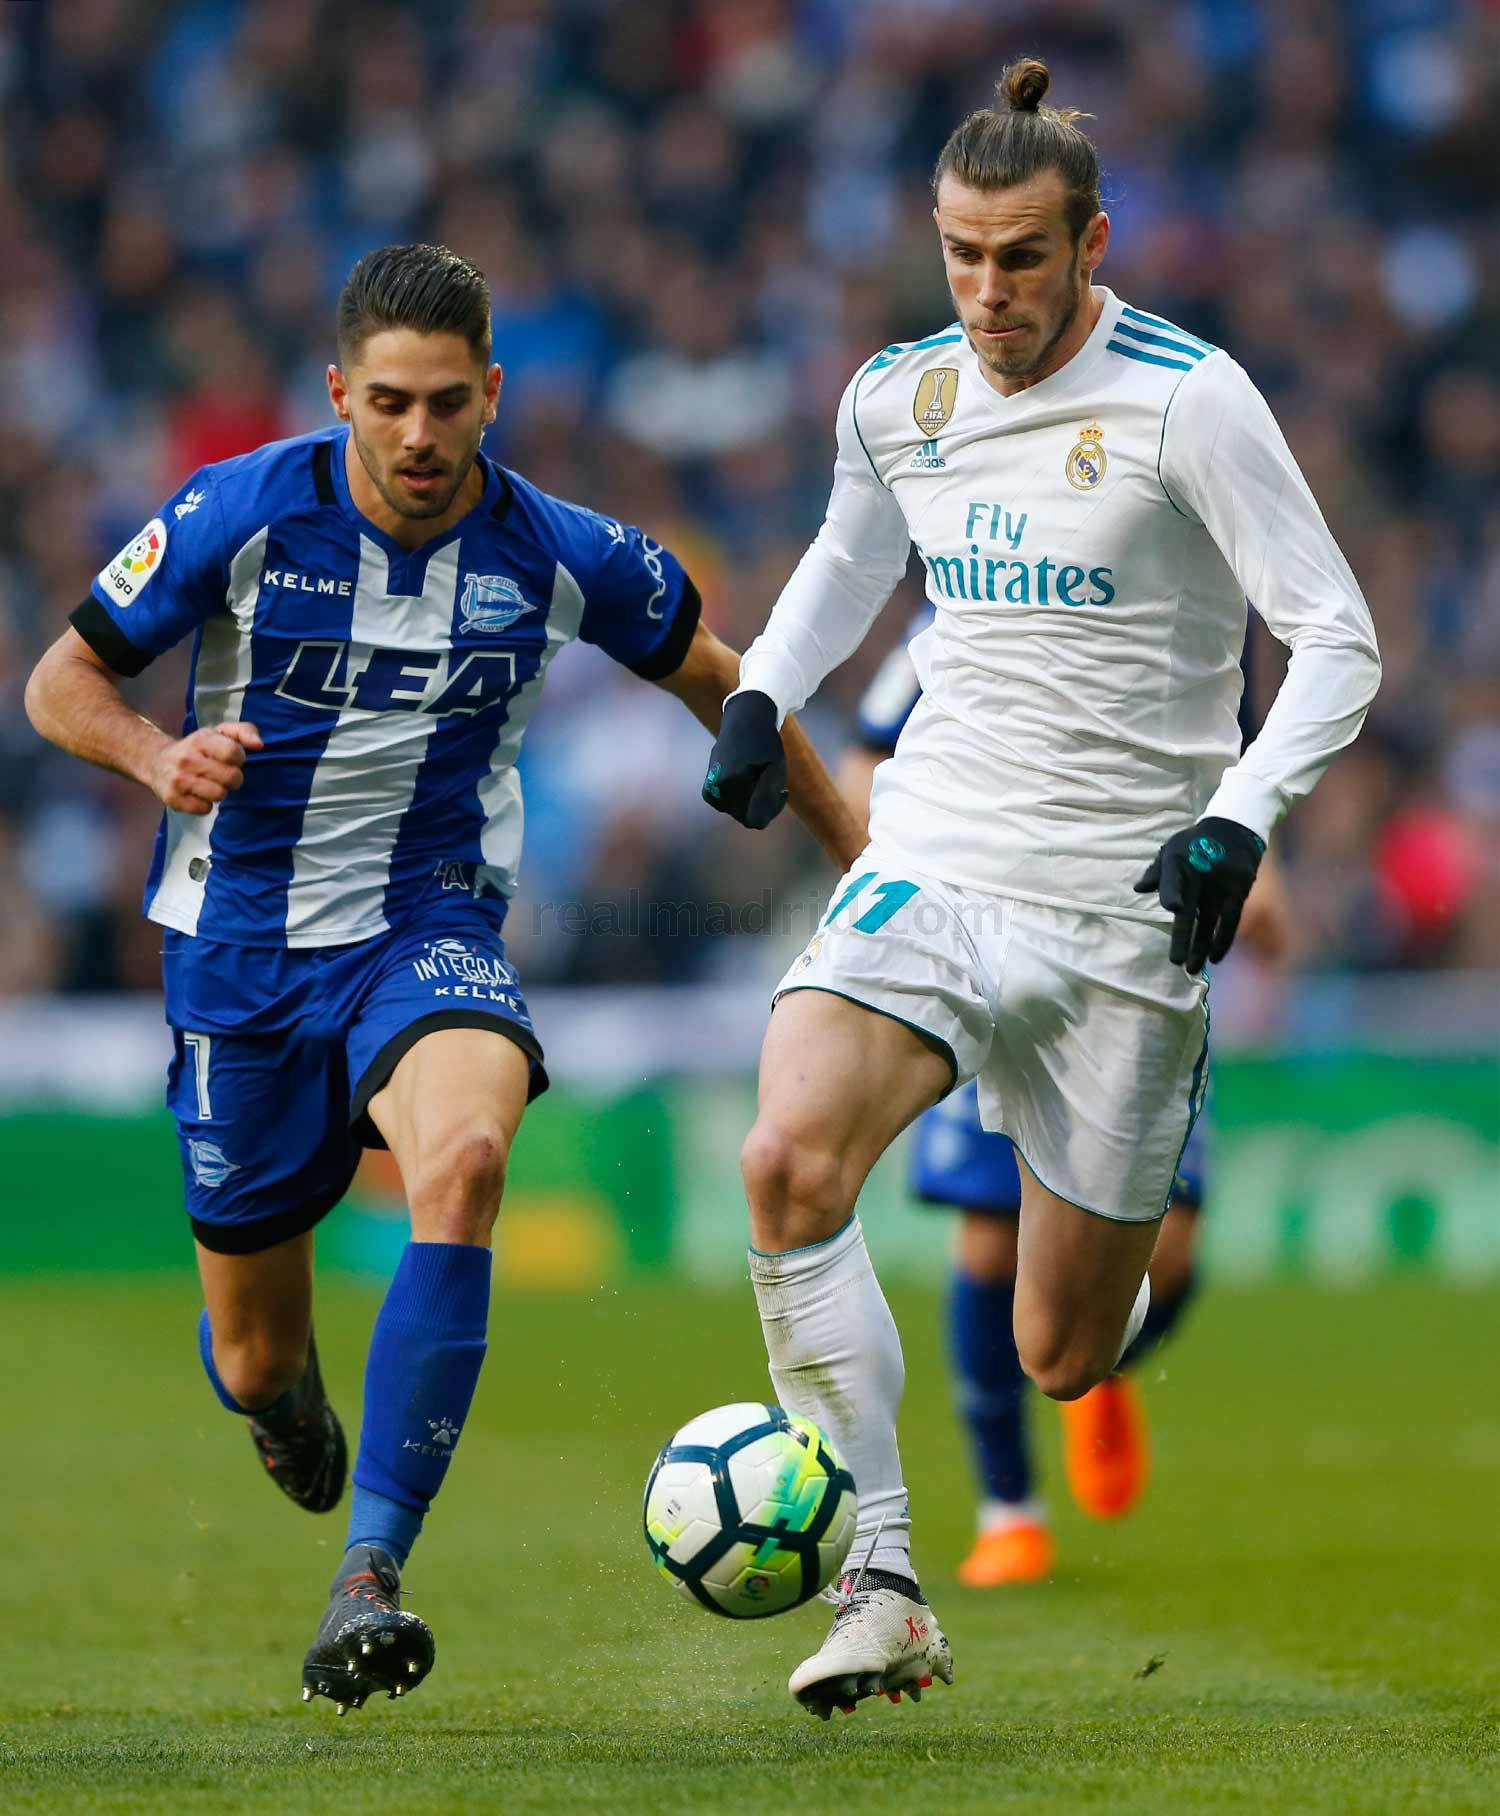 Real Madrid - Real Madrid - Alavés - 24-02-2018